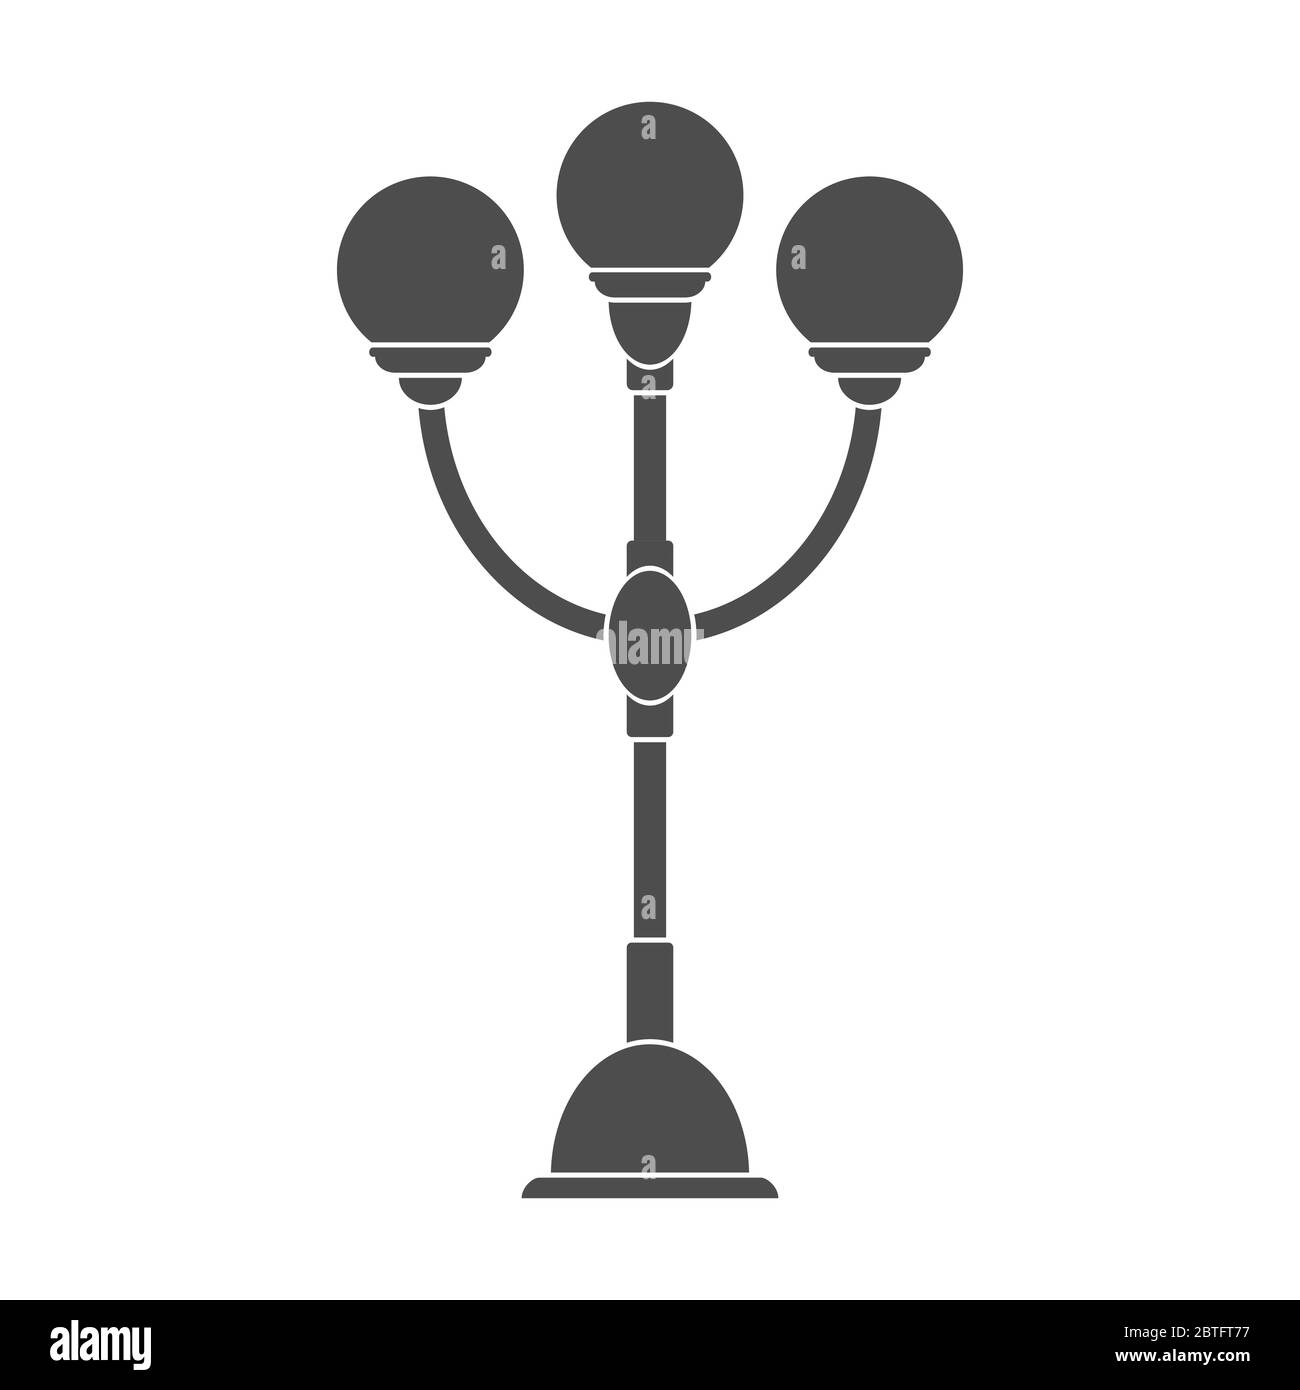 Lighting lamp with three plafonds. Vector illustration for theme design. Isolated on a white background. Simple design. Stock Vector